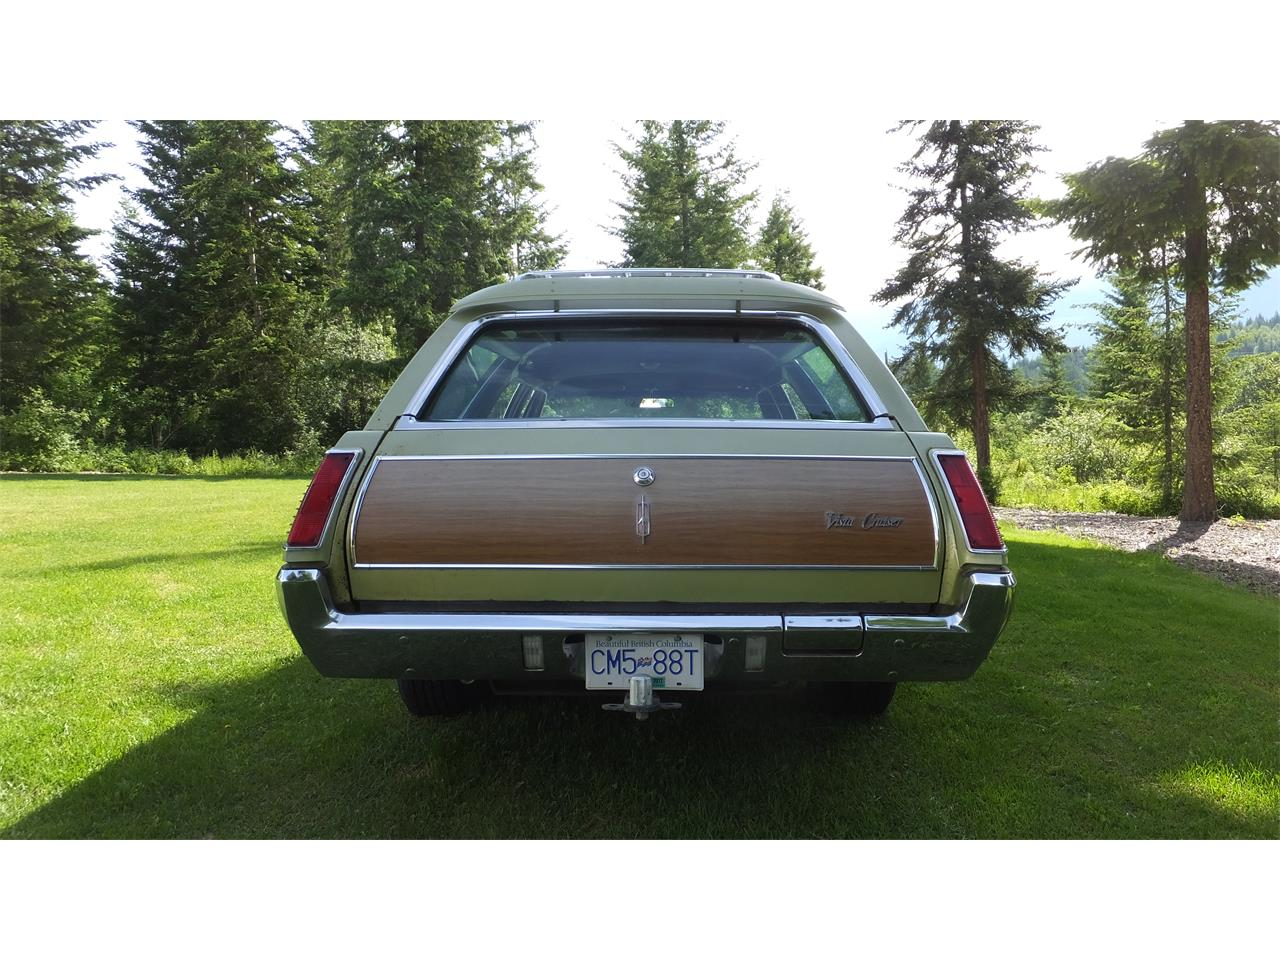 Large Picture of '71 Vista Cruiser - $15,500.00 Offered by a Private Seller - LBXI